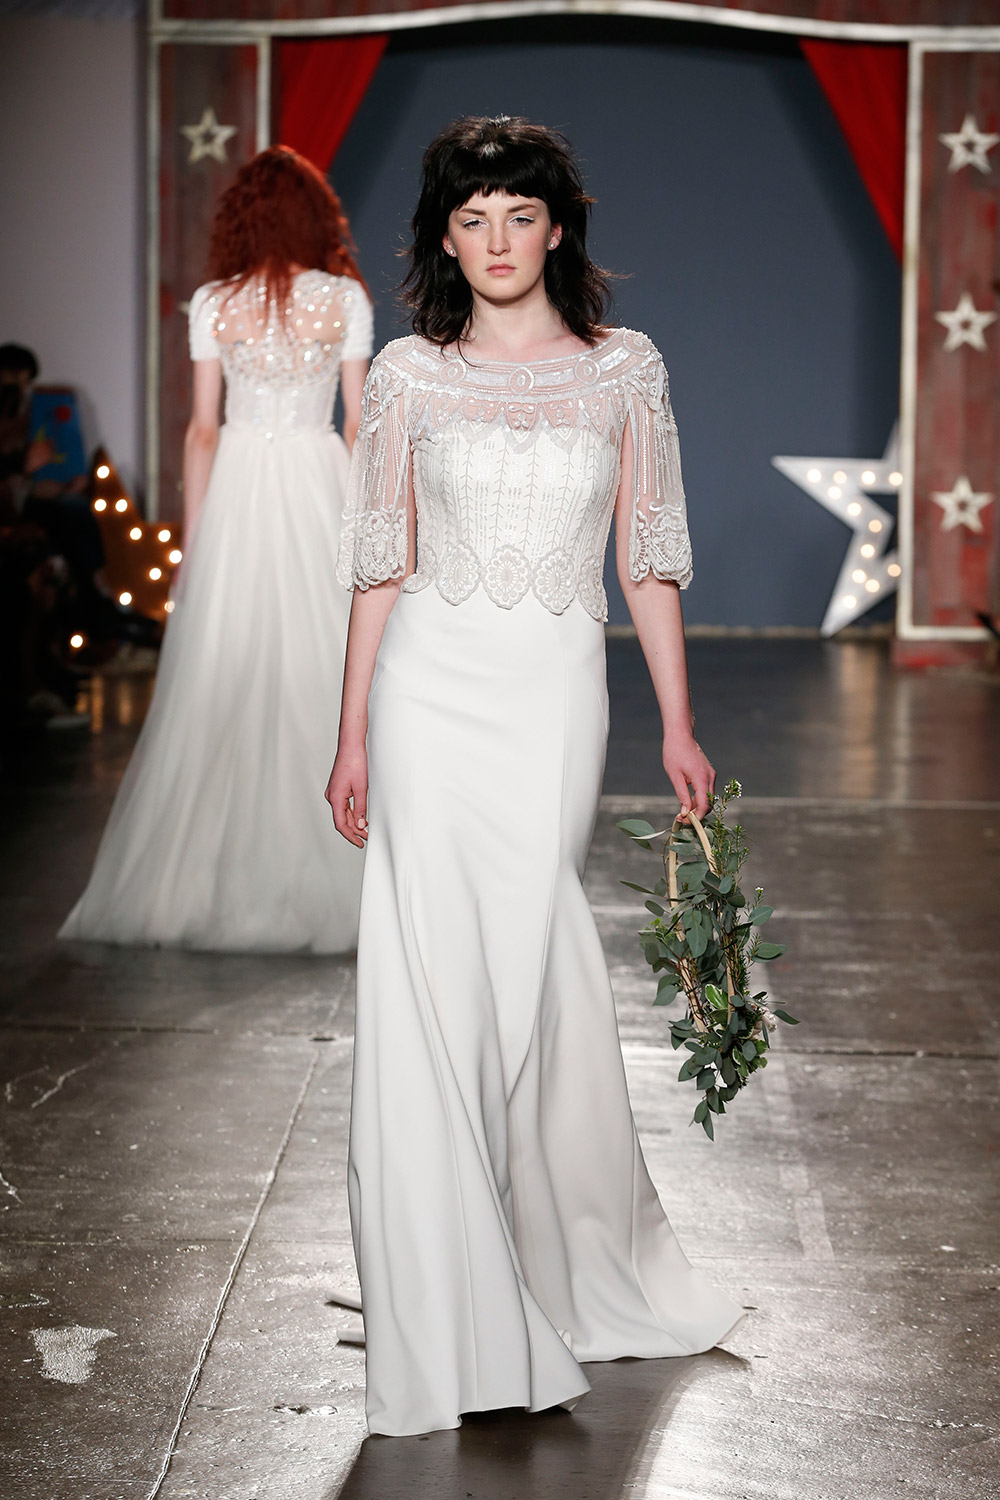 Jenny Packham 2018 Bridal Collection. tp://www.theweddingnotebook.com